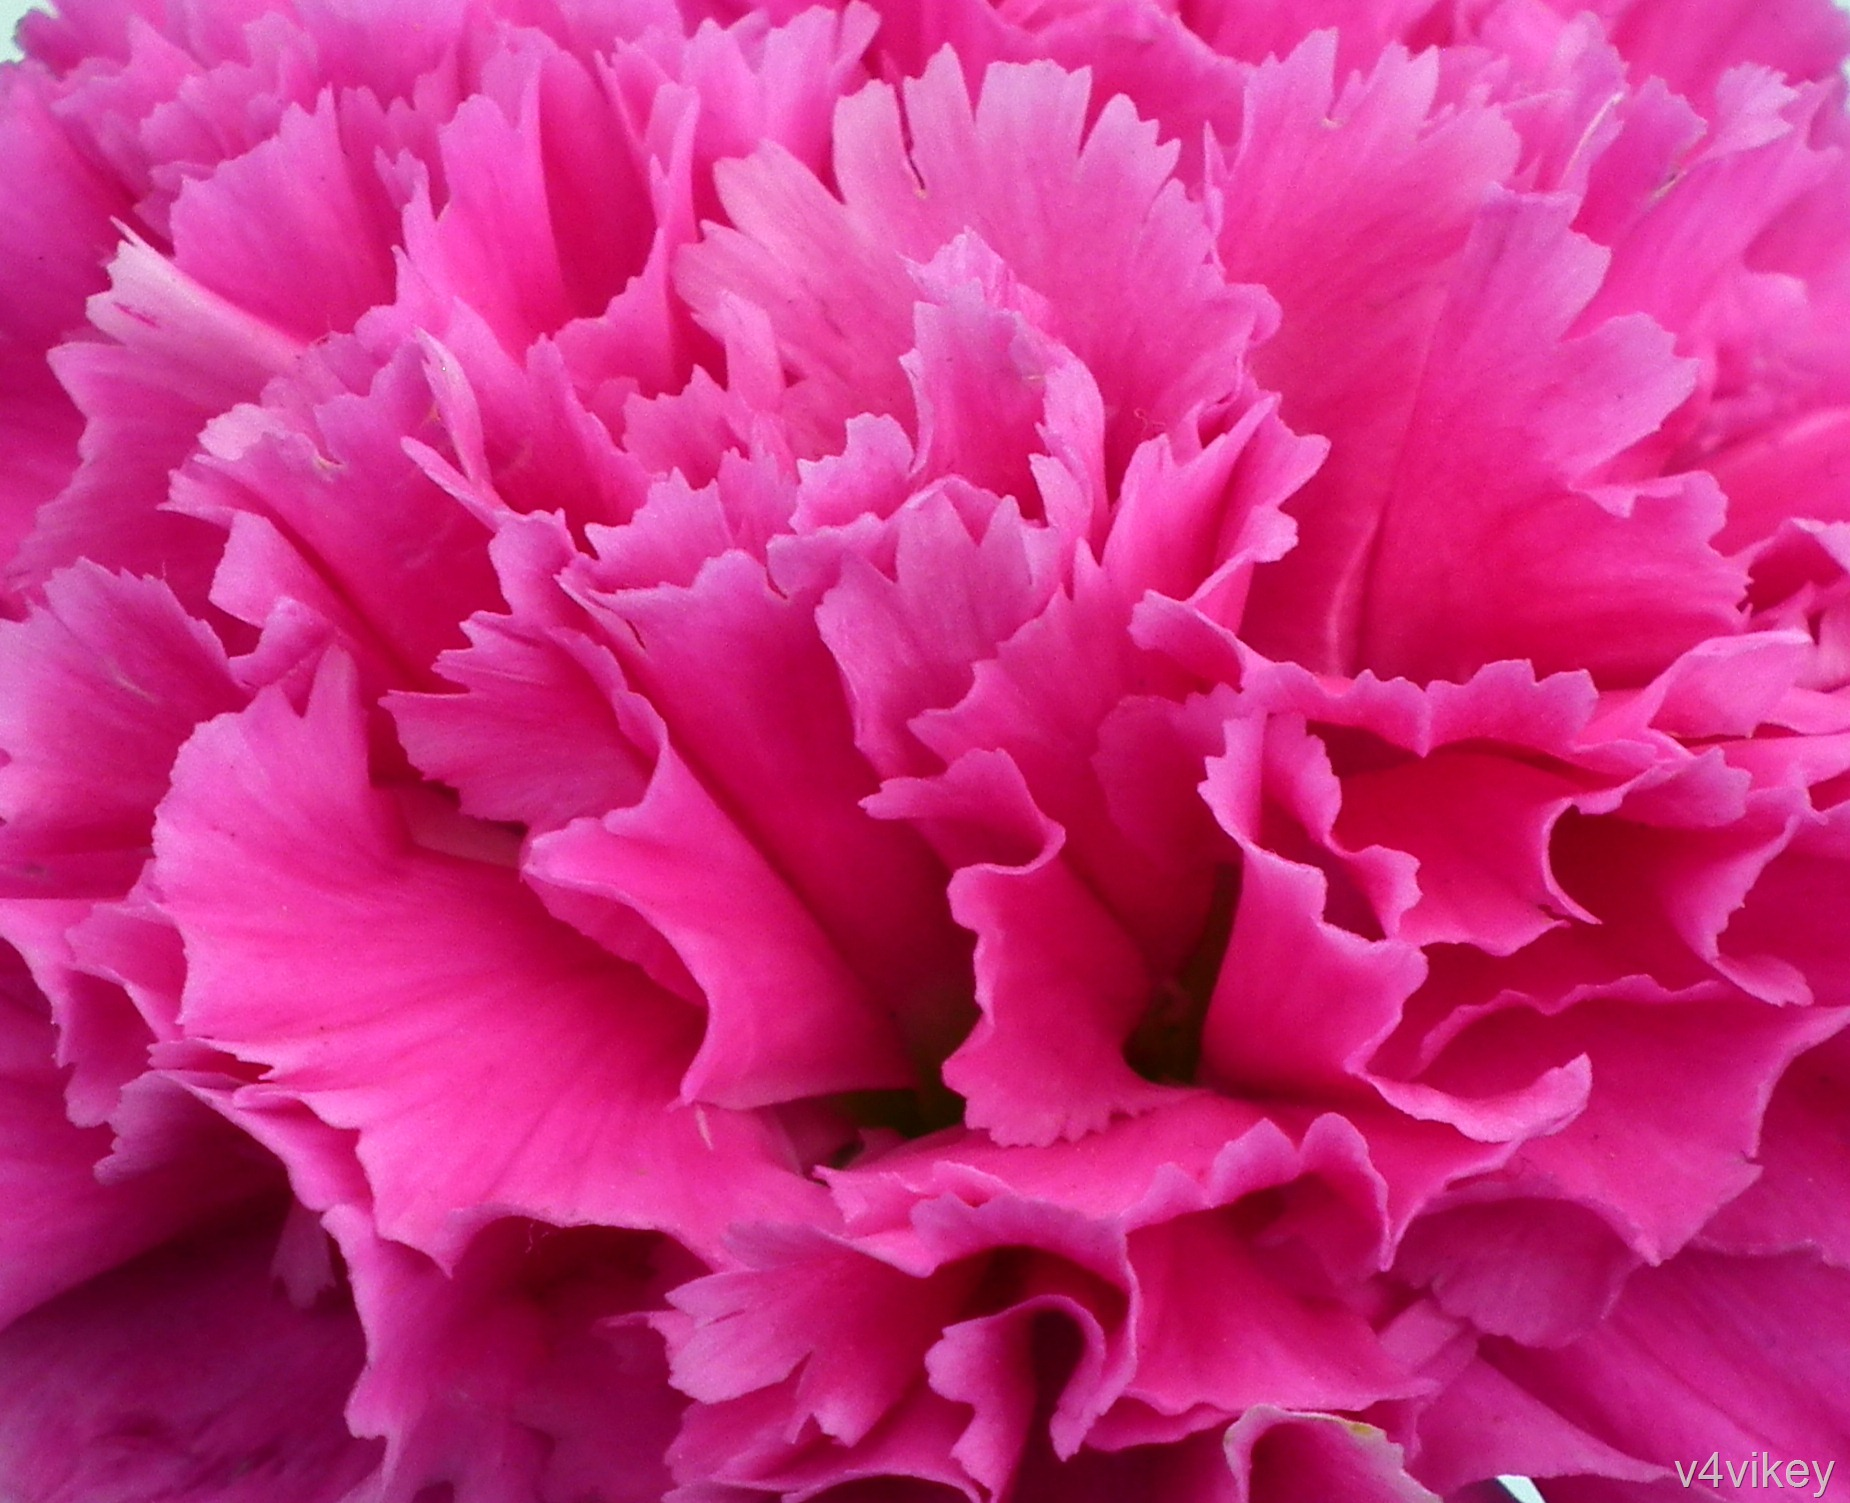 Meaning of pink carnation flower wallpaper tadka pink carnation flower mightylinksfo